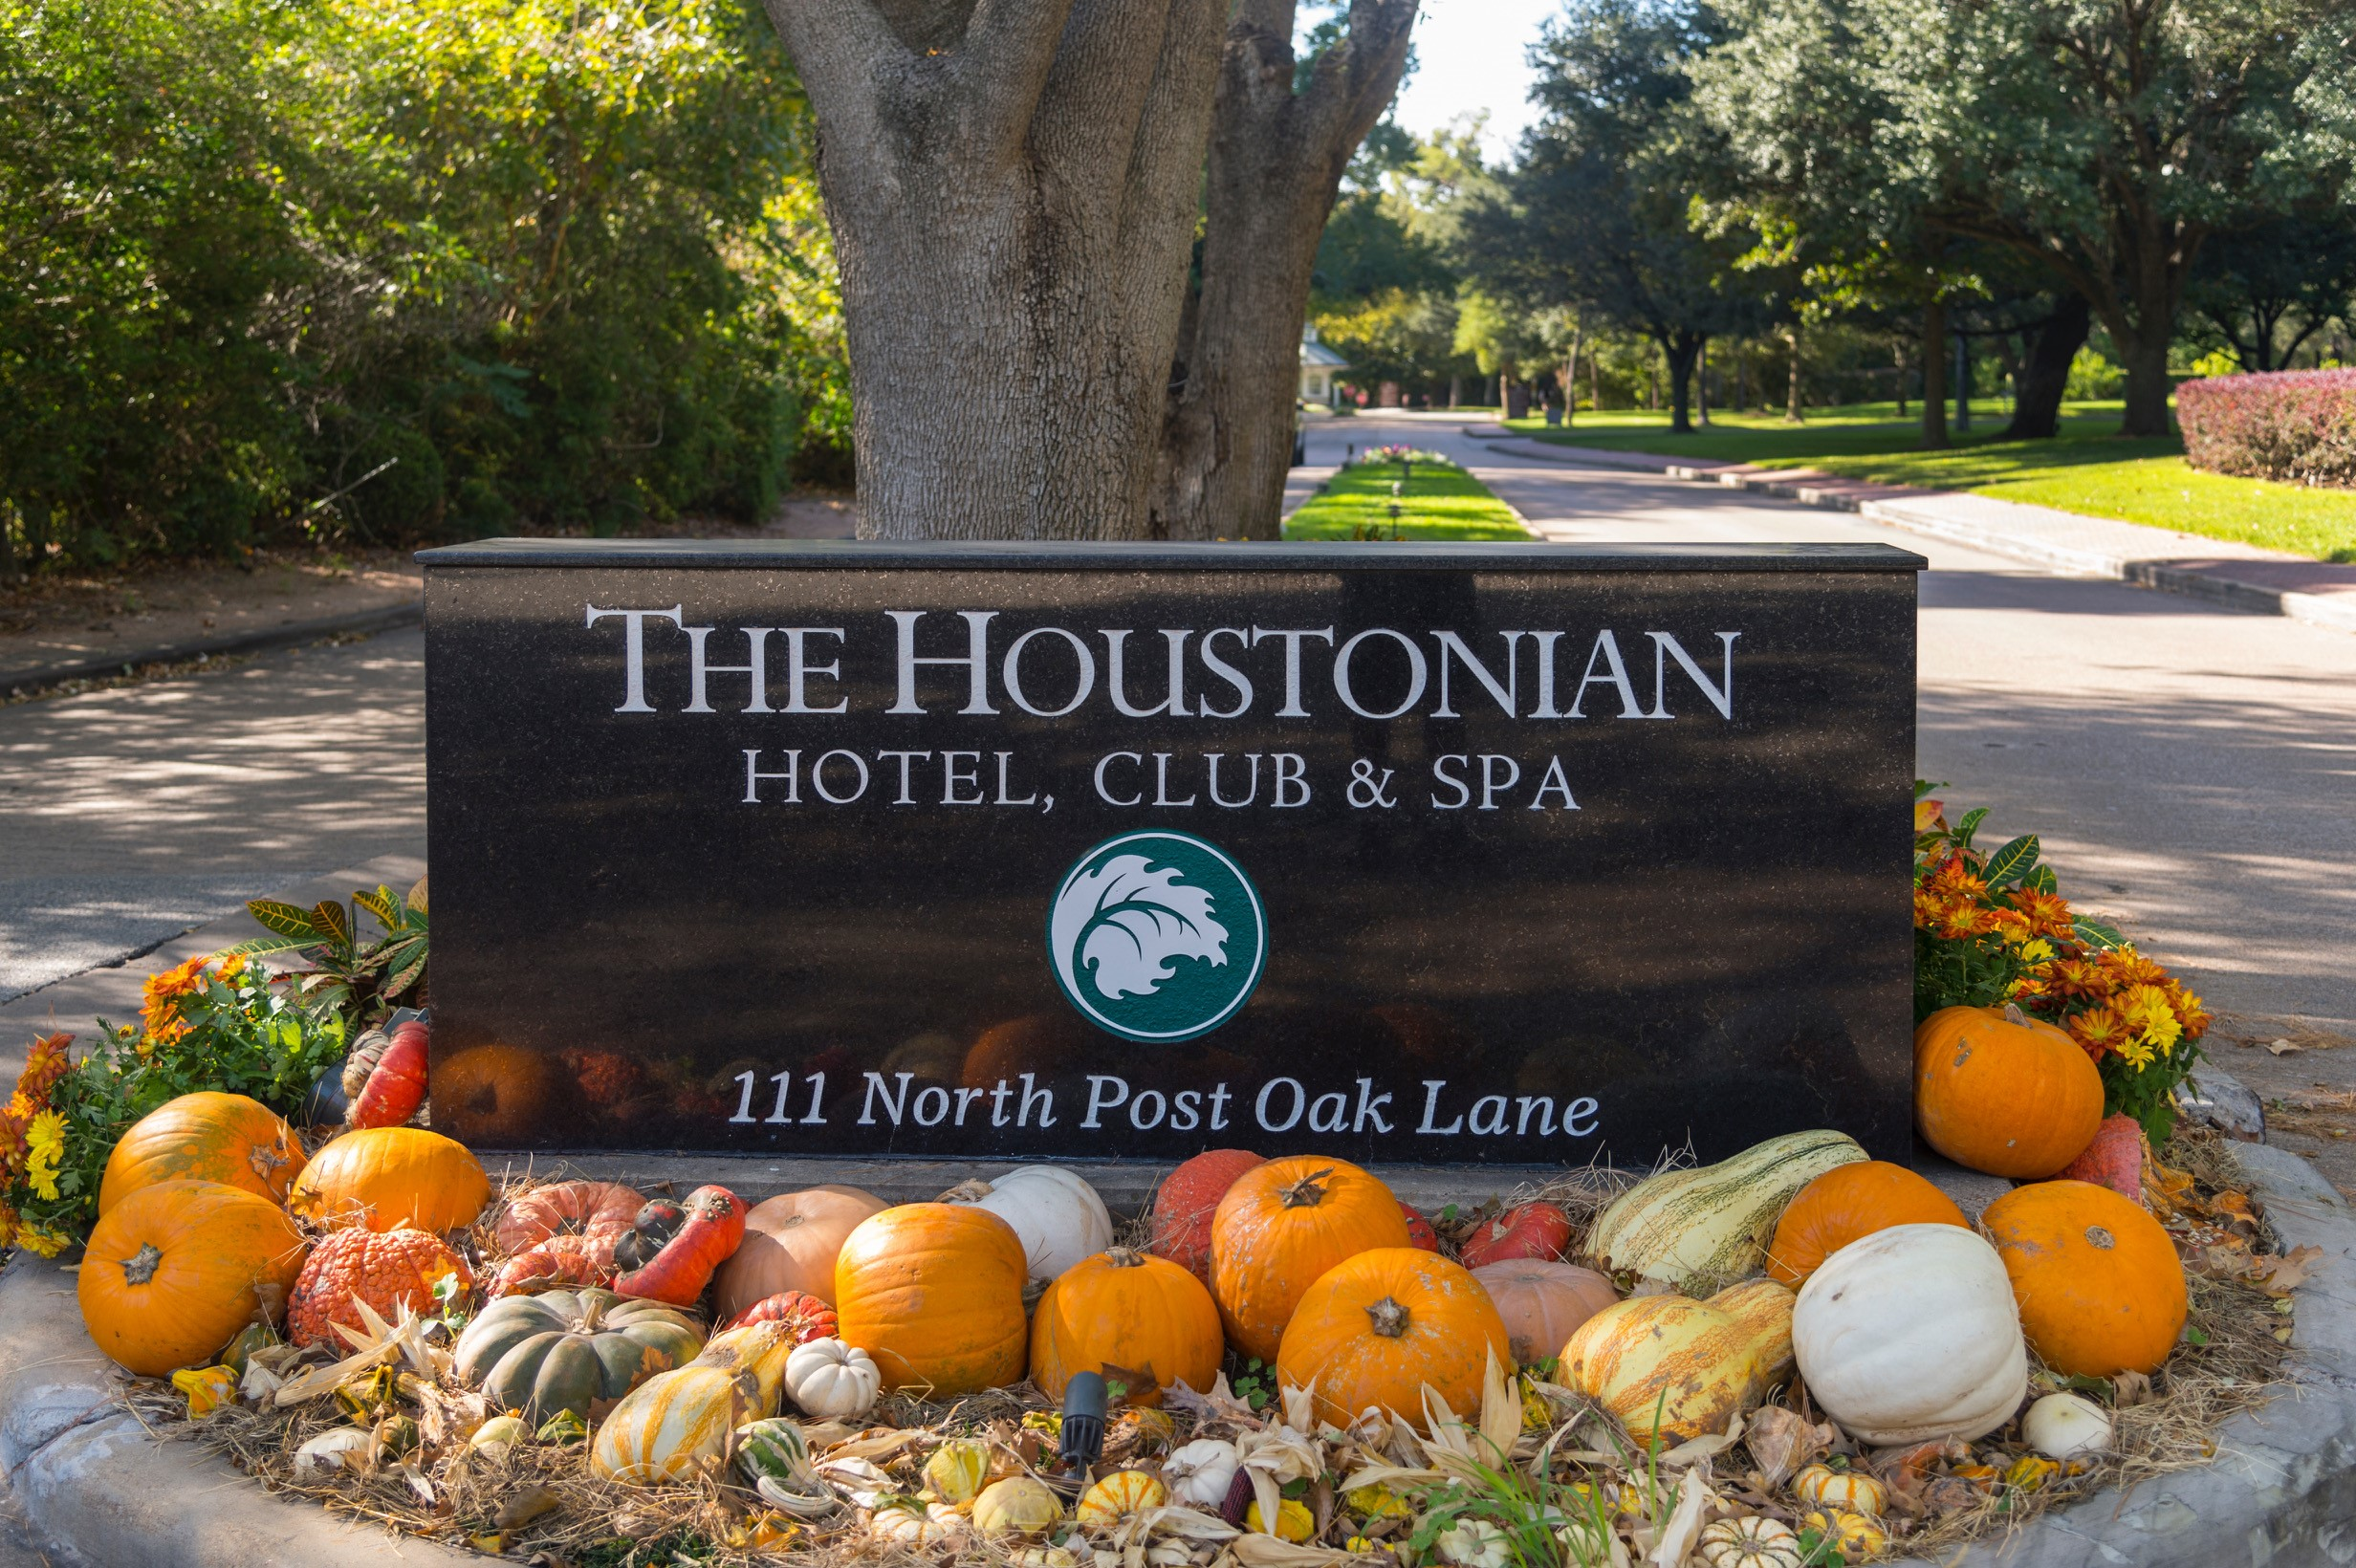 entrance sign to The Houstonian with pumpkins and fall decor